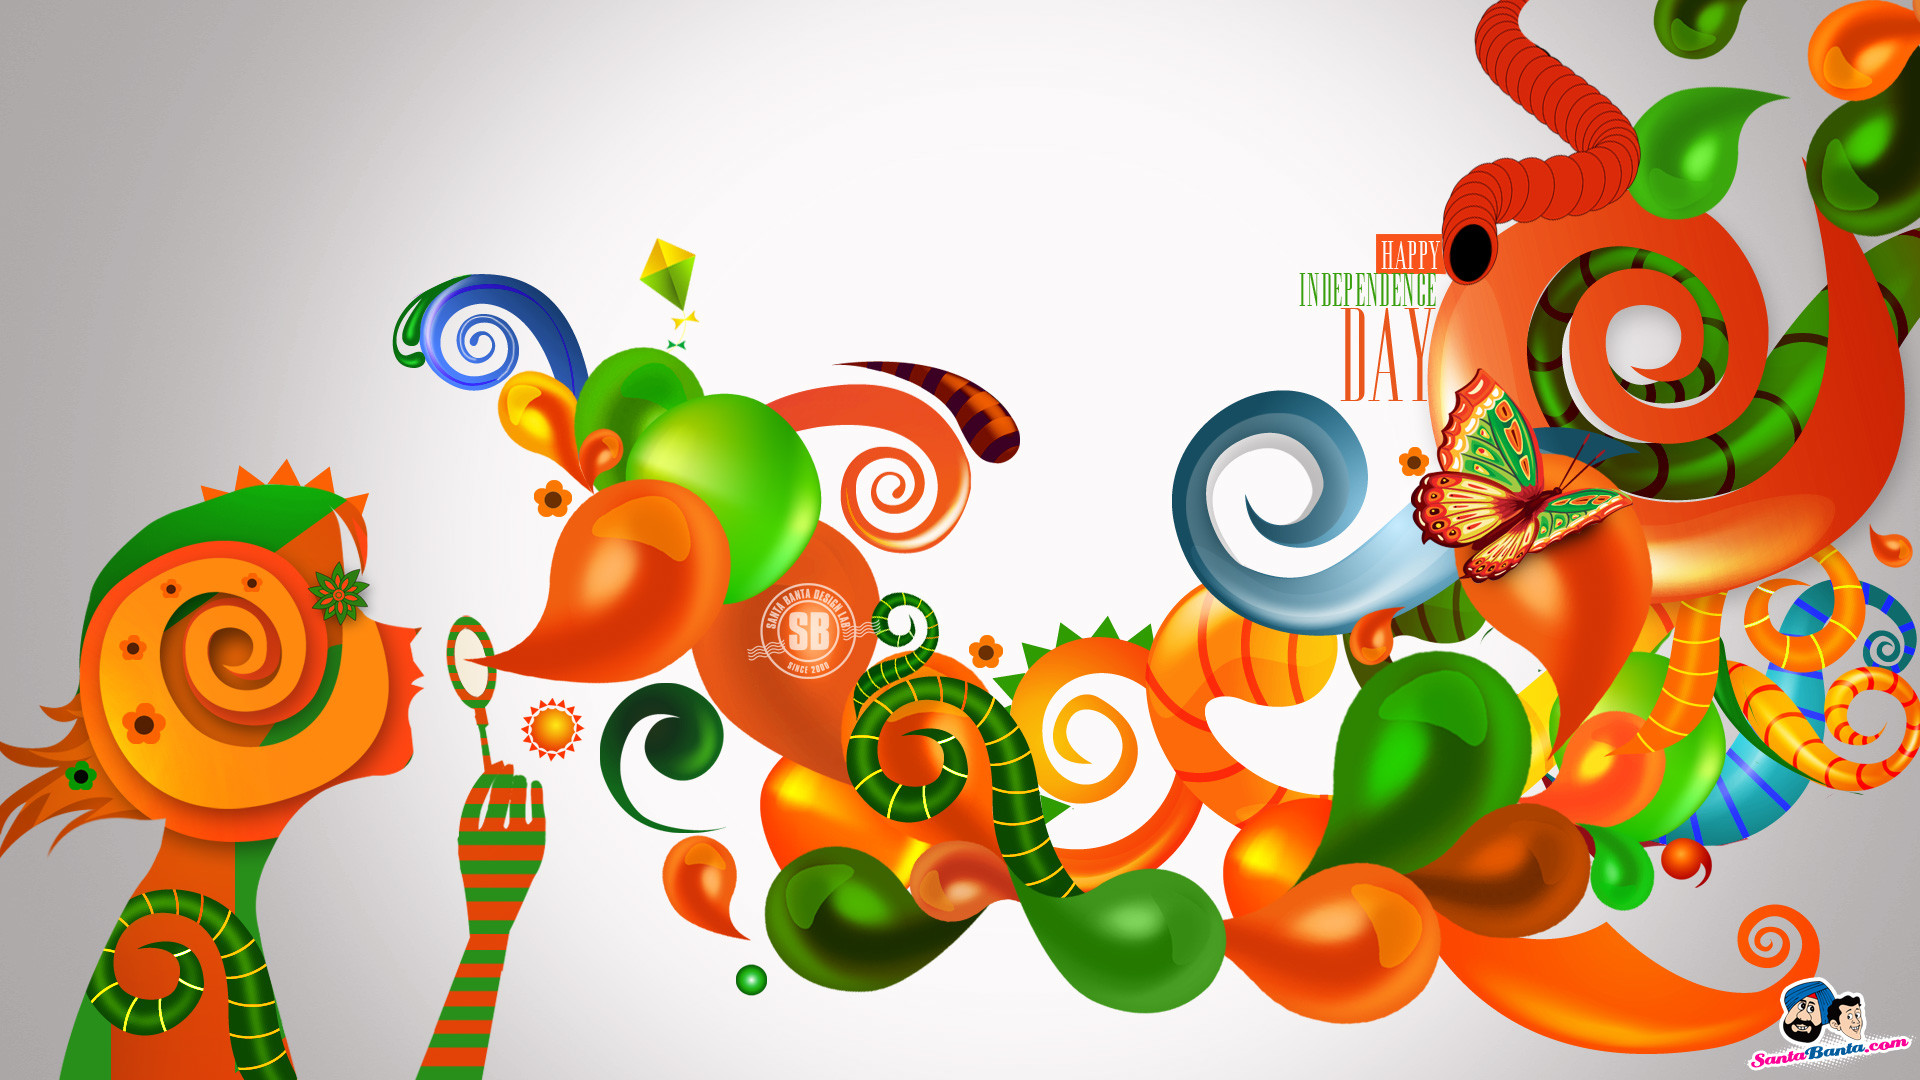 1920x1080 Indian Independence Day Wallpaper. Colorful Wallpaper